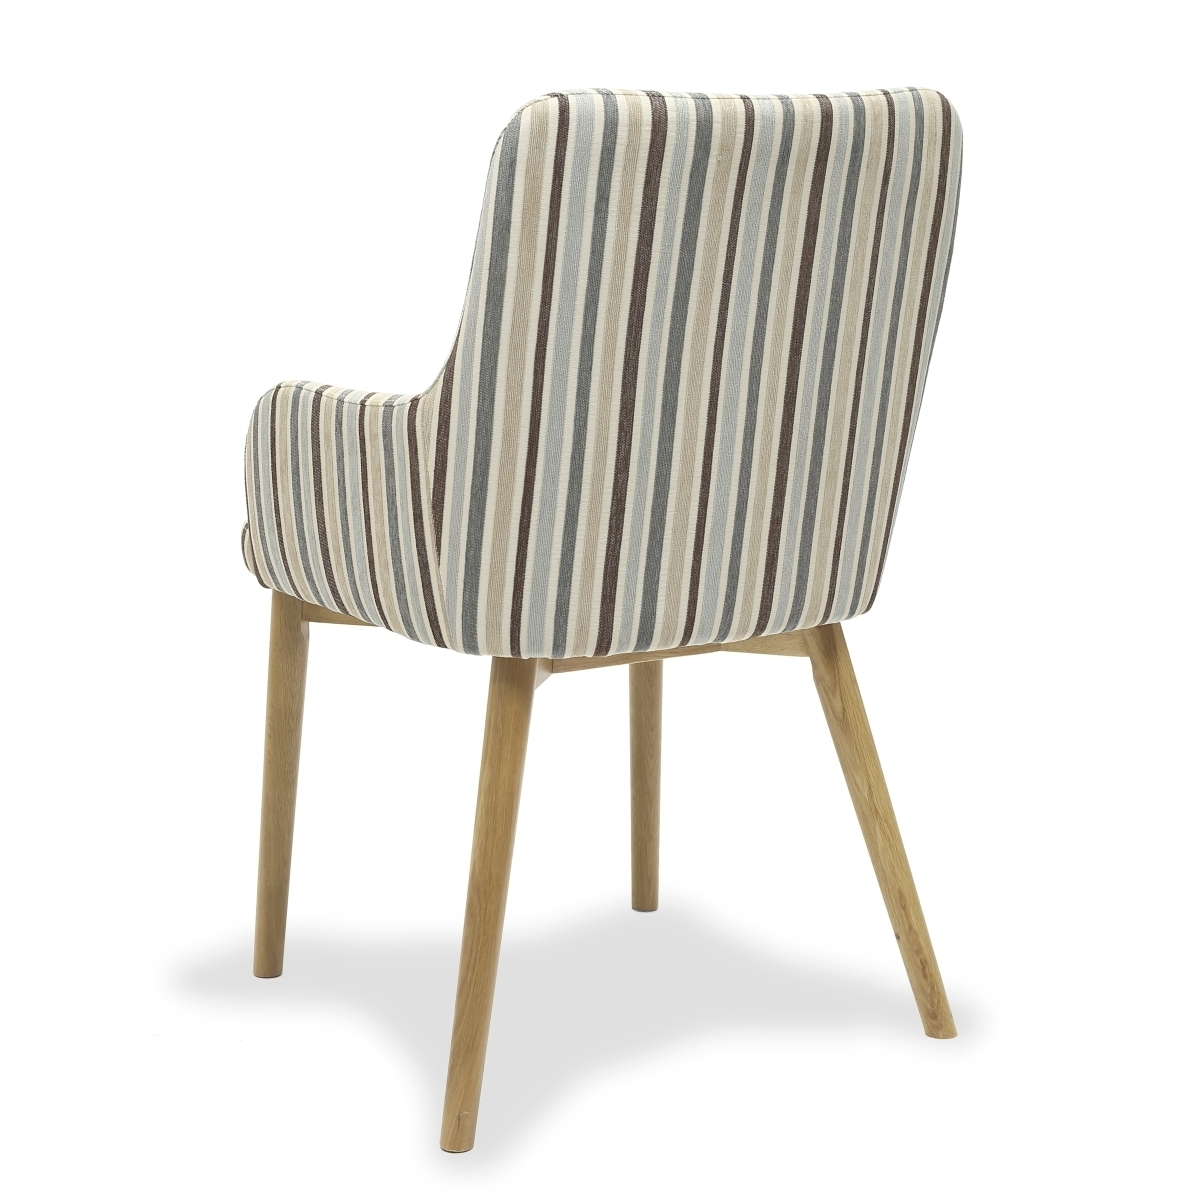 Most Recent Shankar Sidcup Duck Egg Blue Stripe Dining Chairs 086 04 11 05 01 Throughout Blue Stripe Dining Chairs (View 15 of 20)